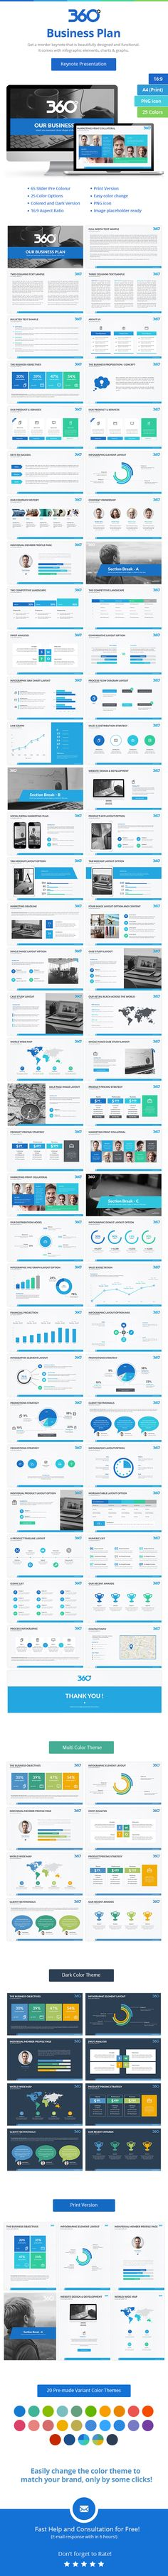 startup business plan keynote presenation template | startup, Powerpoint templates